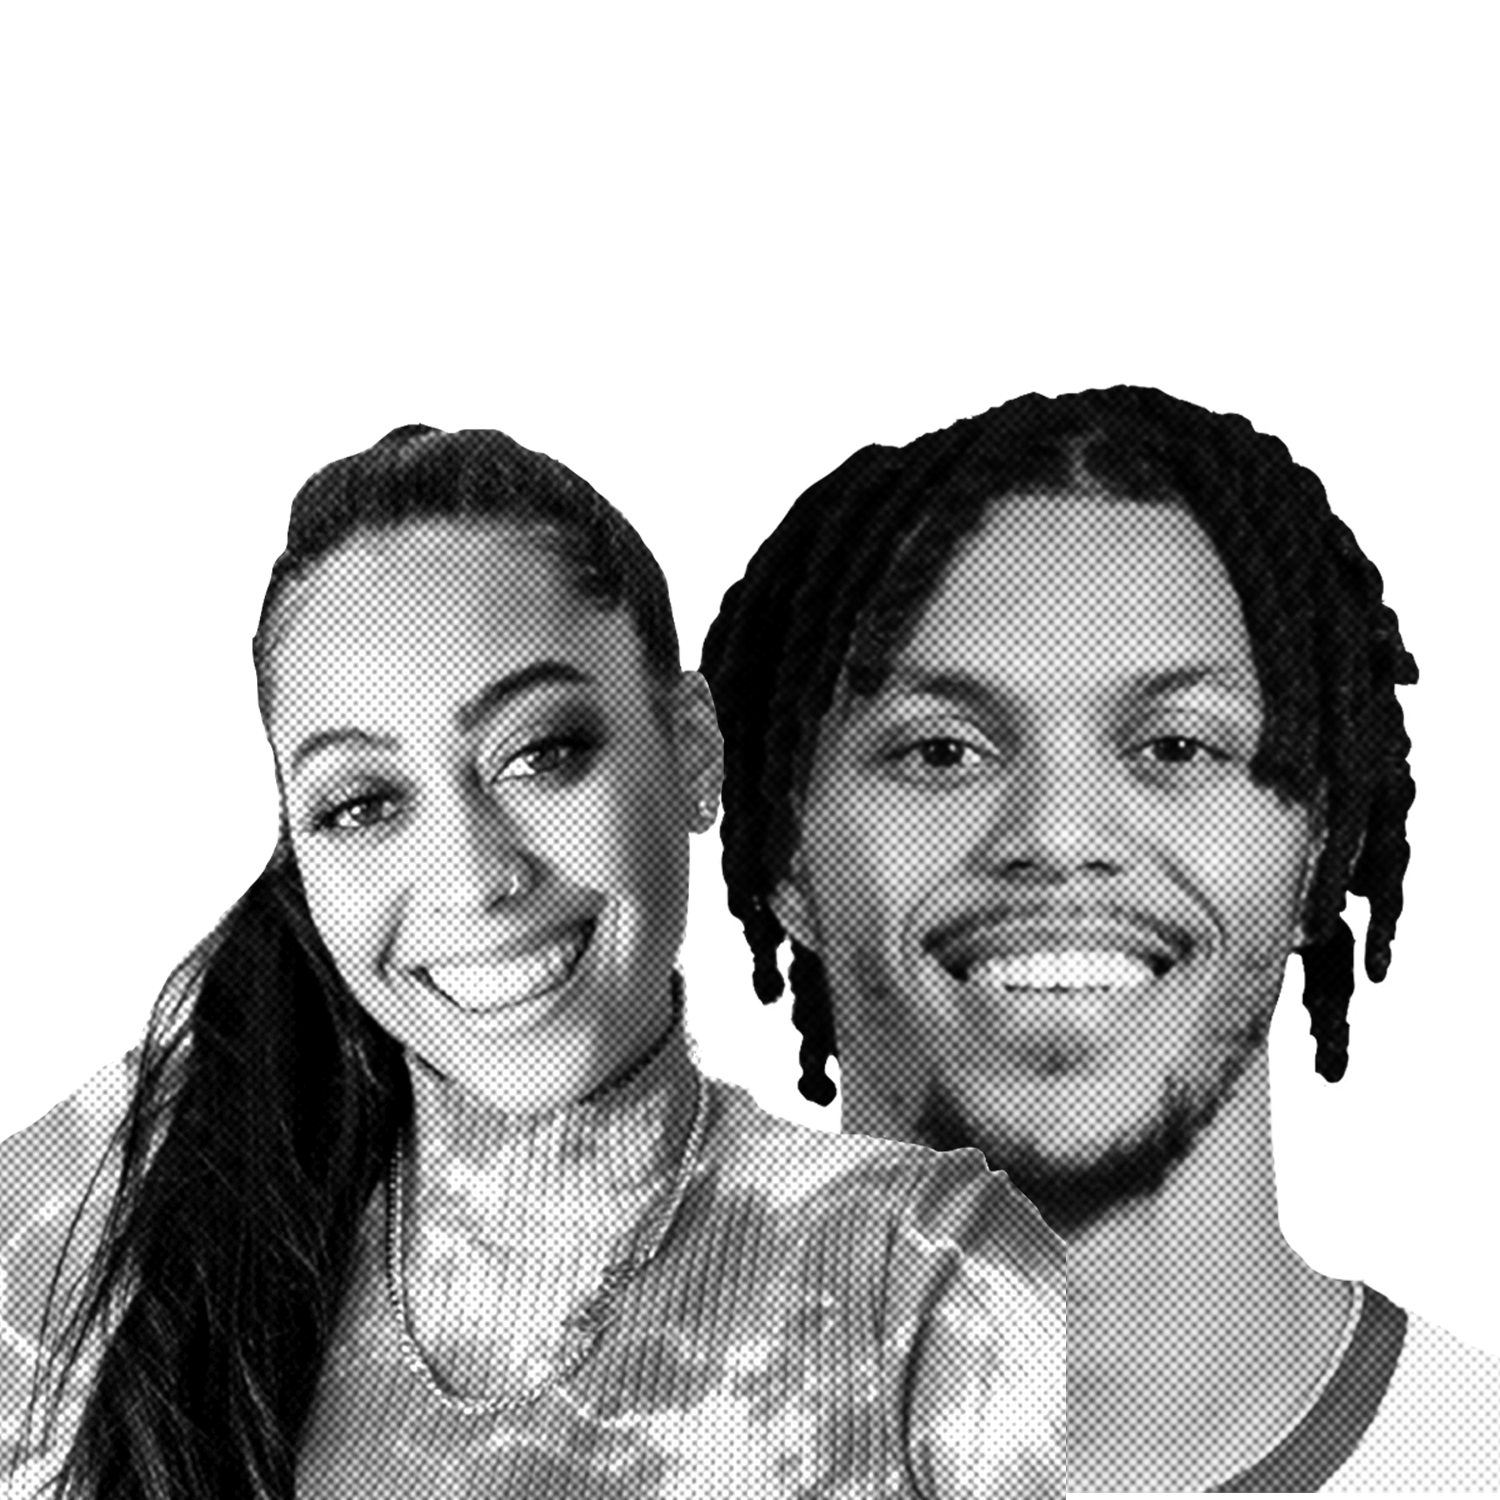 Sydel Curry-Lee & Damion Lee